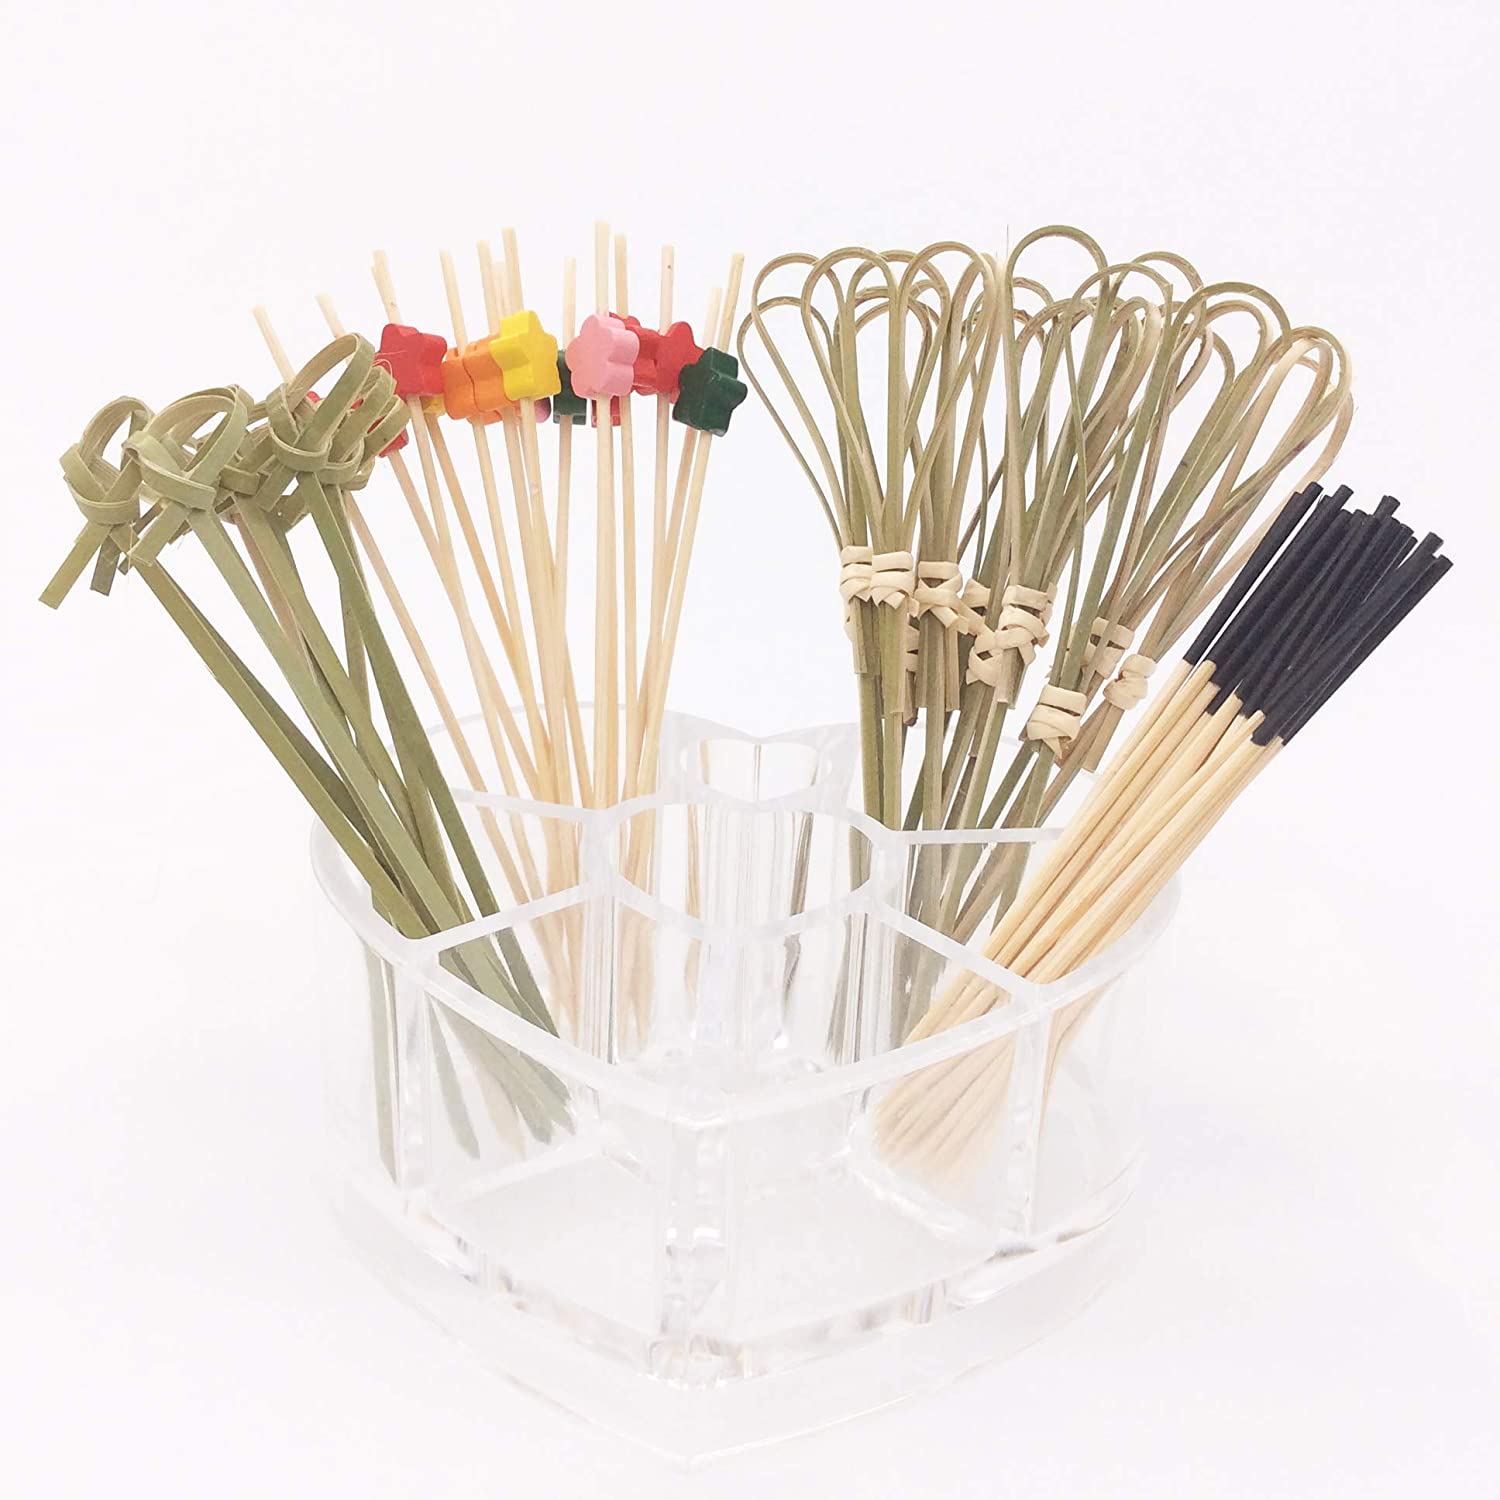 KUZOO Cocktail Picks 400 Pack 4 inch Natural Bamboo Food Picks and Wood Cocktail Skewers Perfect for Cocktail Party, Barbeque, Club Sandwiches Appetizer Picks